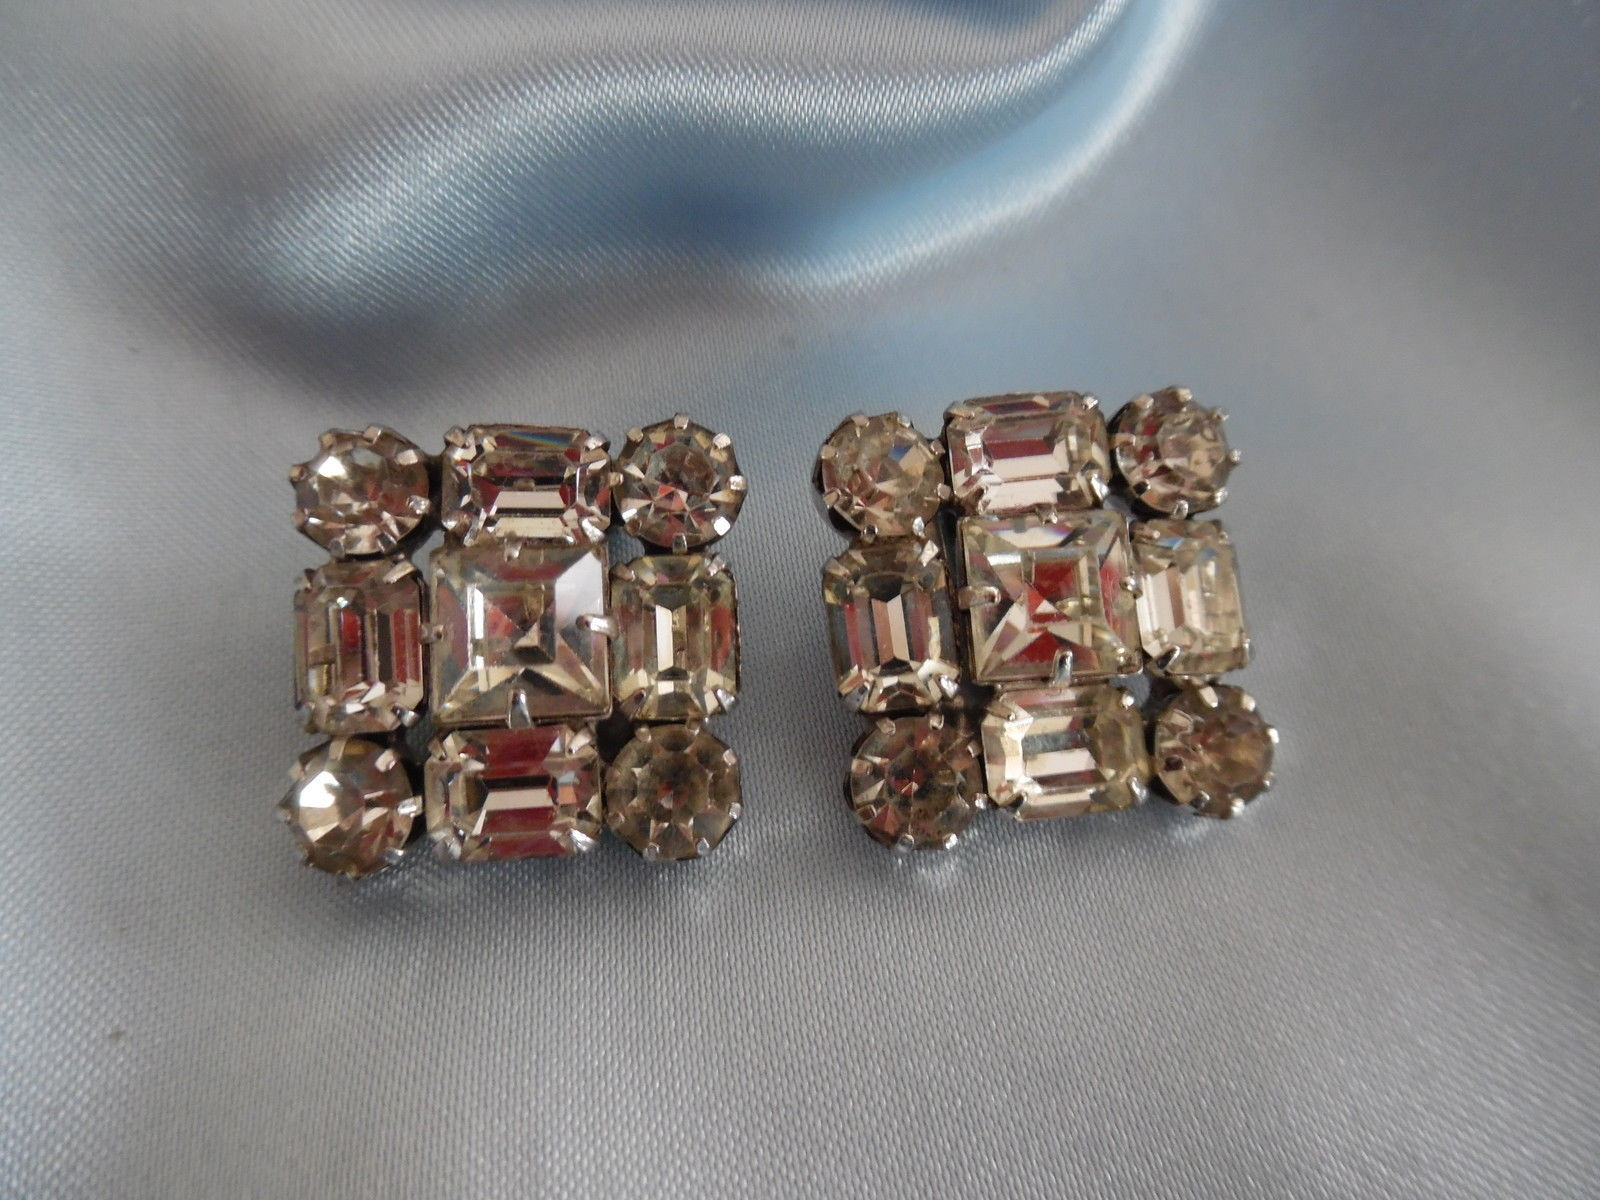 Primary image for Vintage WEISS Rhinestone Square Clip on EARRINGS - Signed - FREE SHIPPING